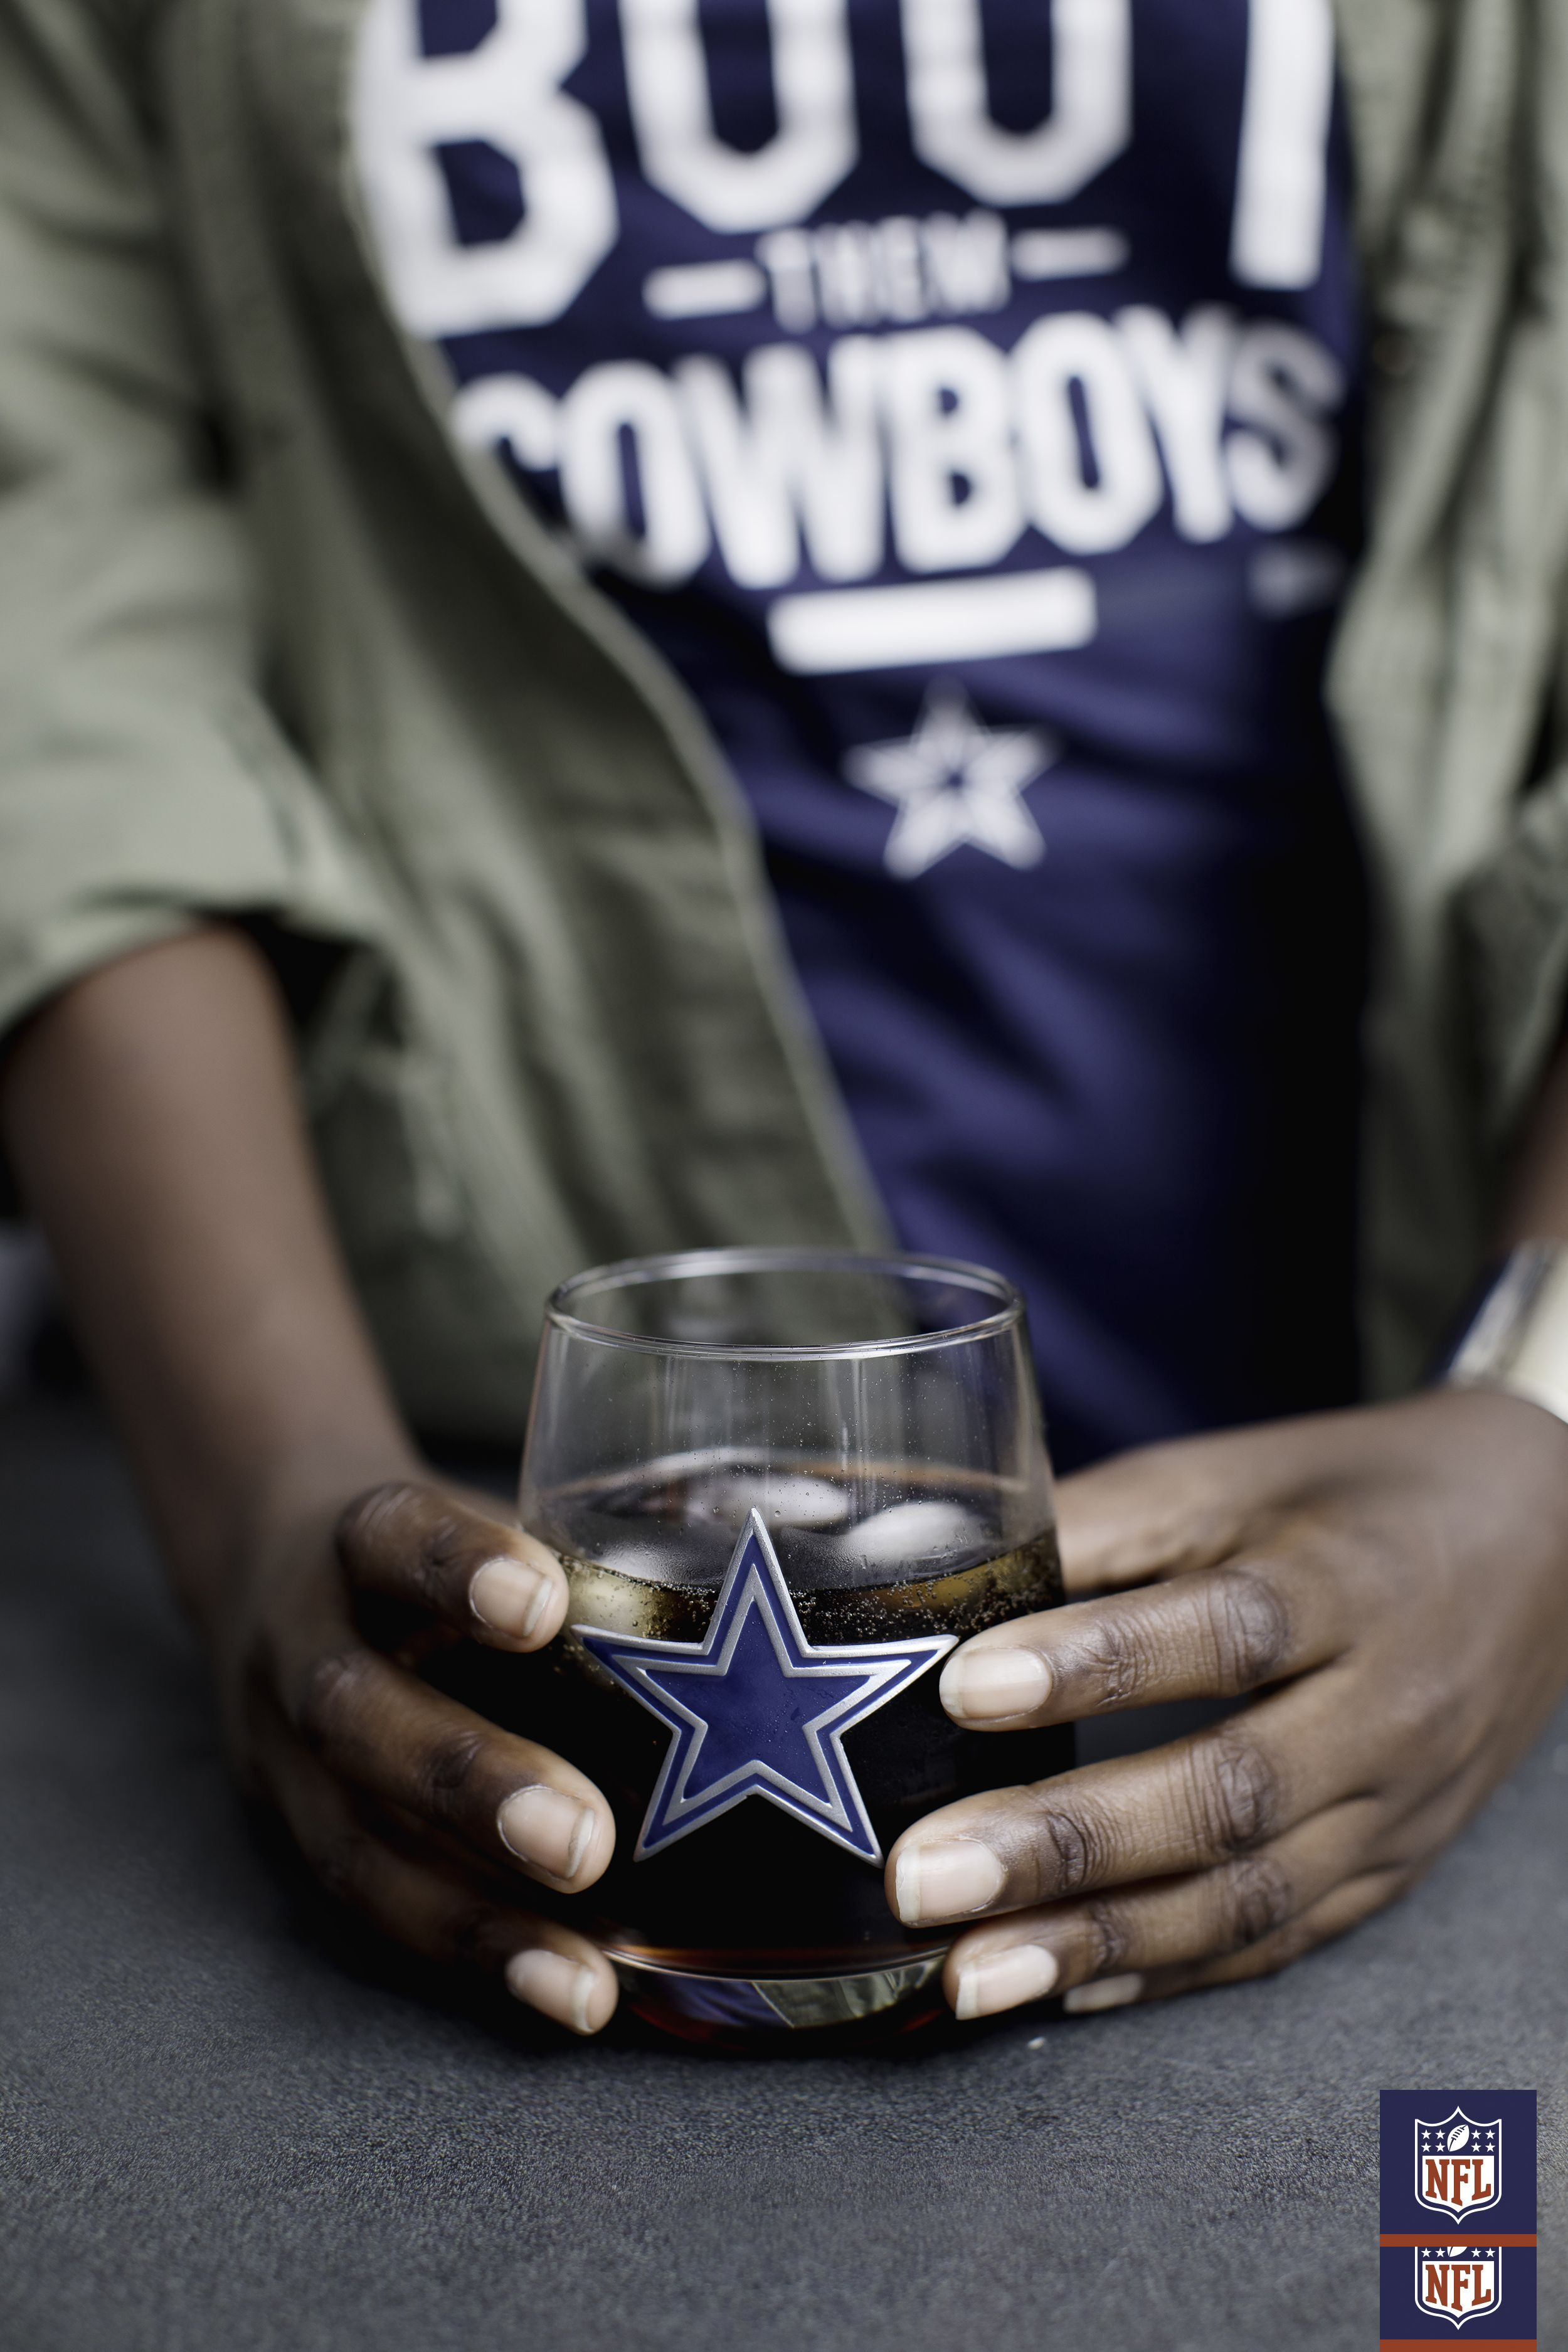 9b19be8b41af11 All the best Dallas Cowboys Gear and Collectibles are at the official  online store of the NFL. The Official Cowboys Pro Shop on NFL Shop has all  the ...